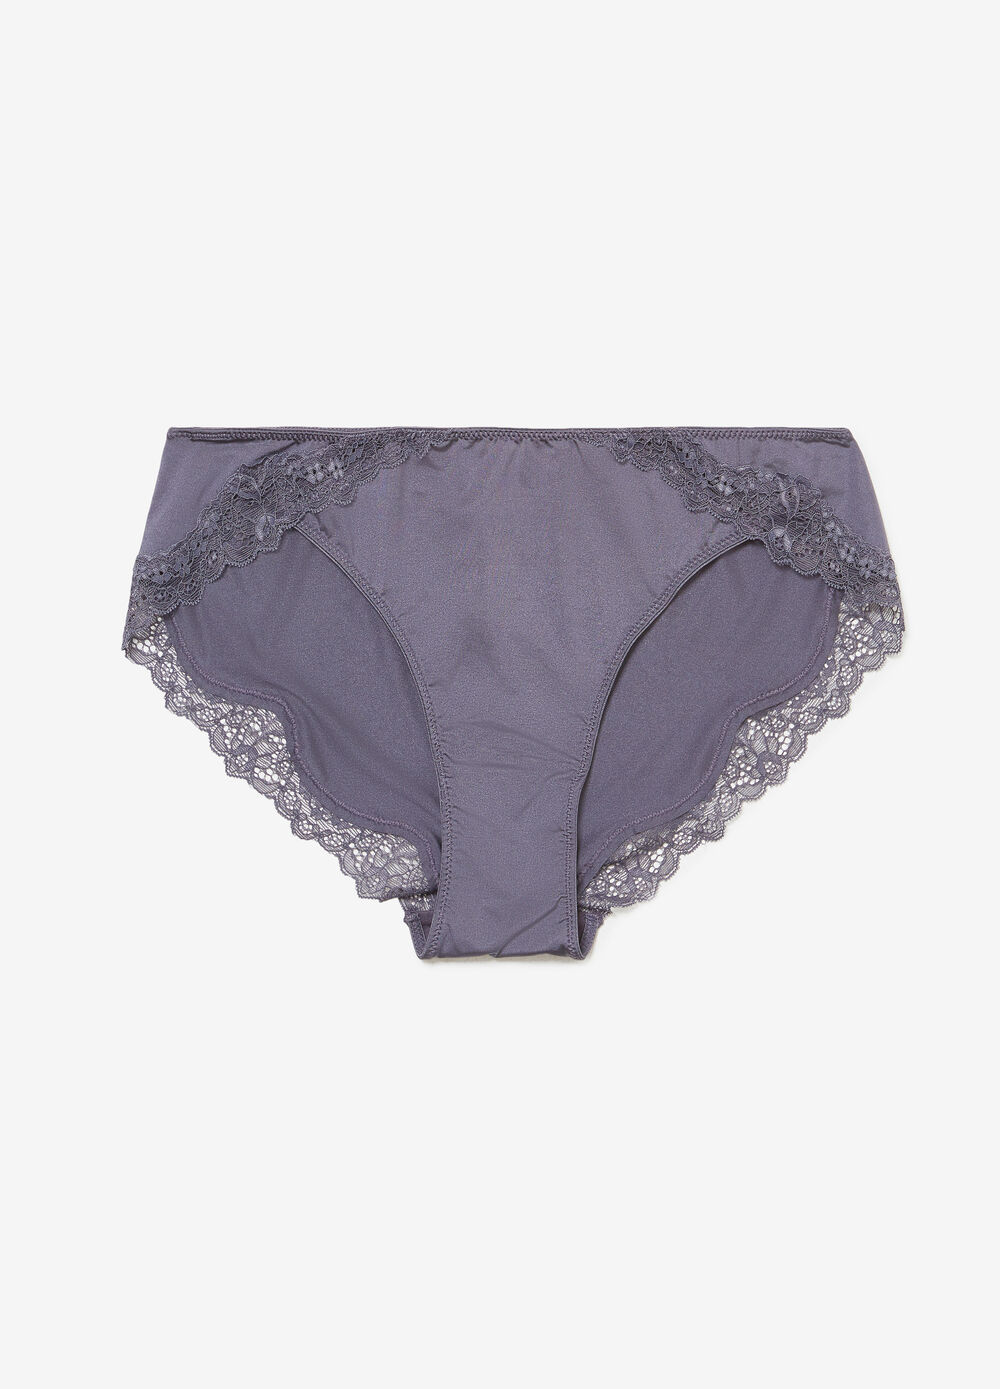 Solid colour stretch briefs with lace trim